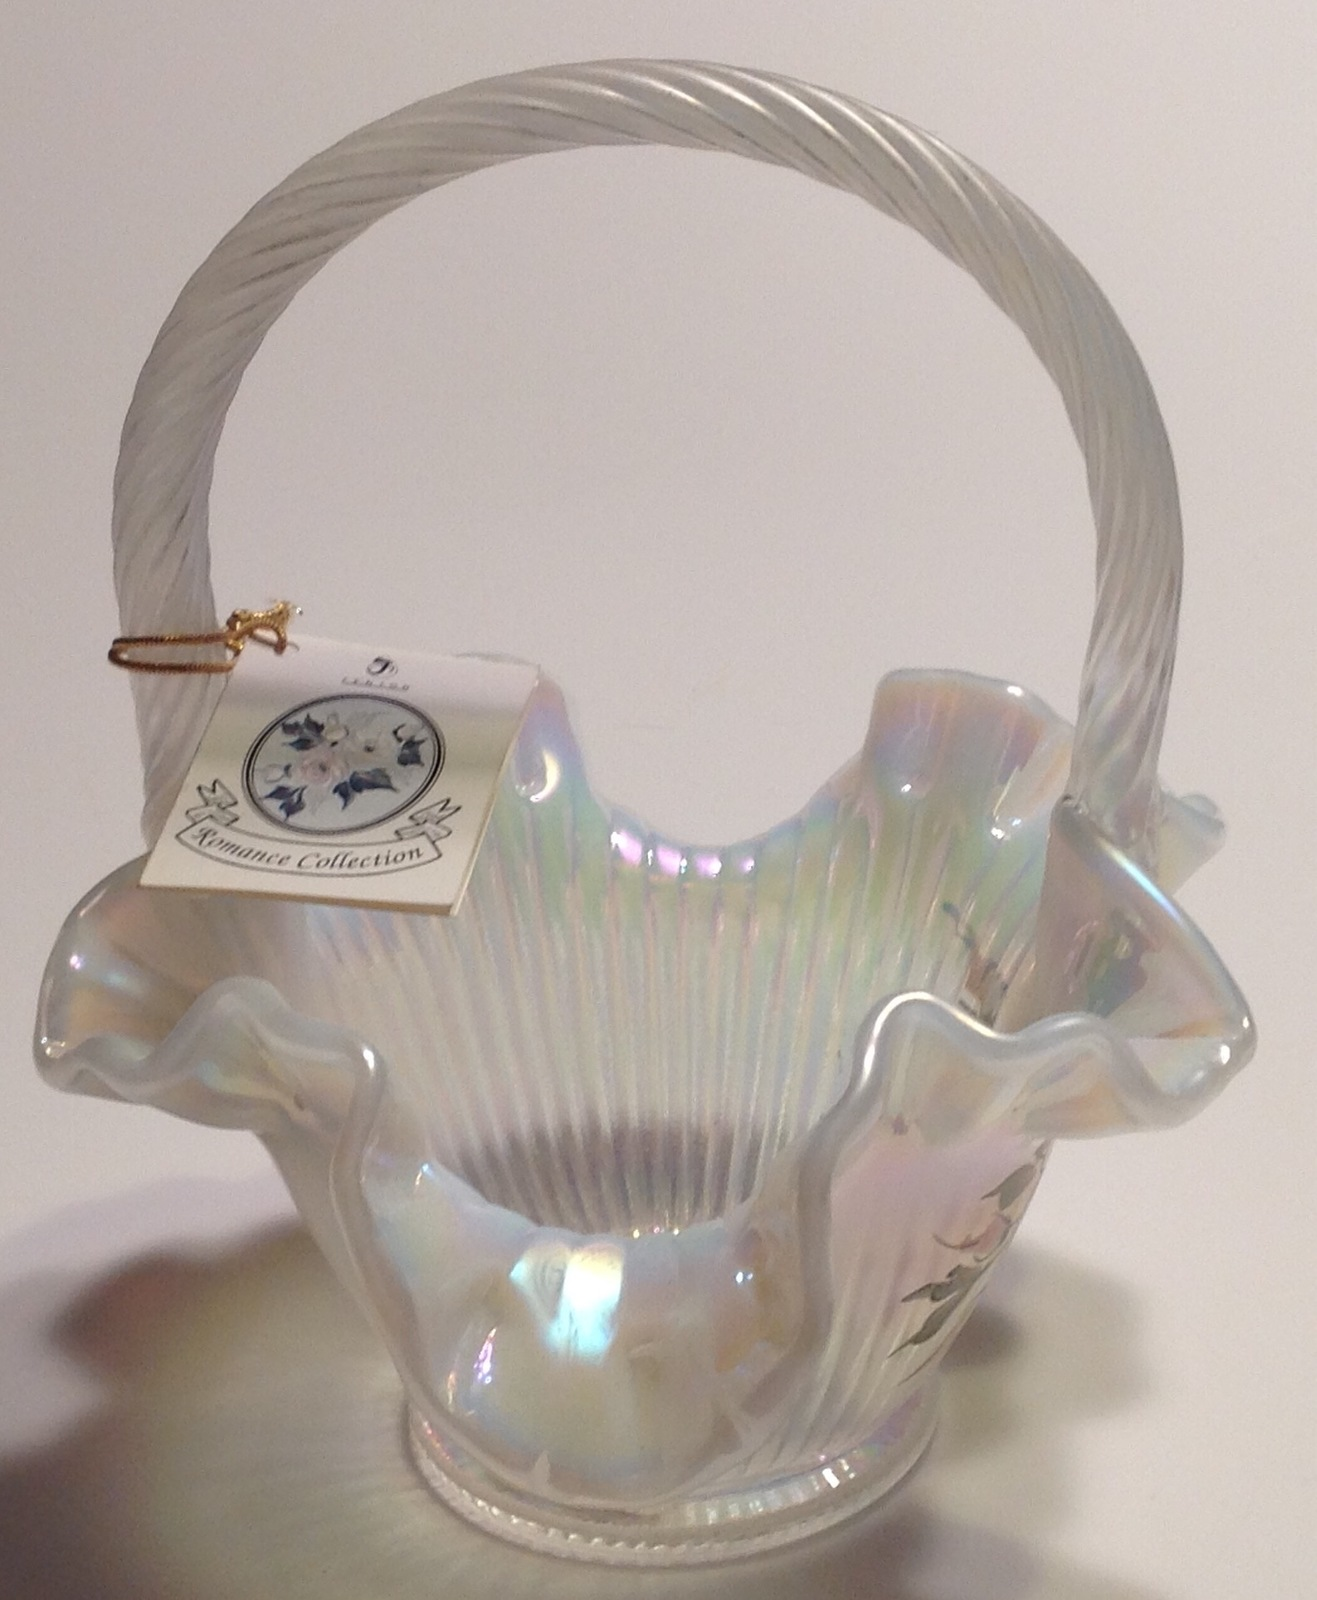 Fenton Opalescent Glass Basket Artist Signed Mackay Hand Painted image 2